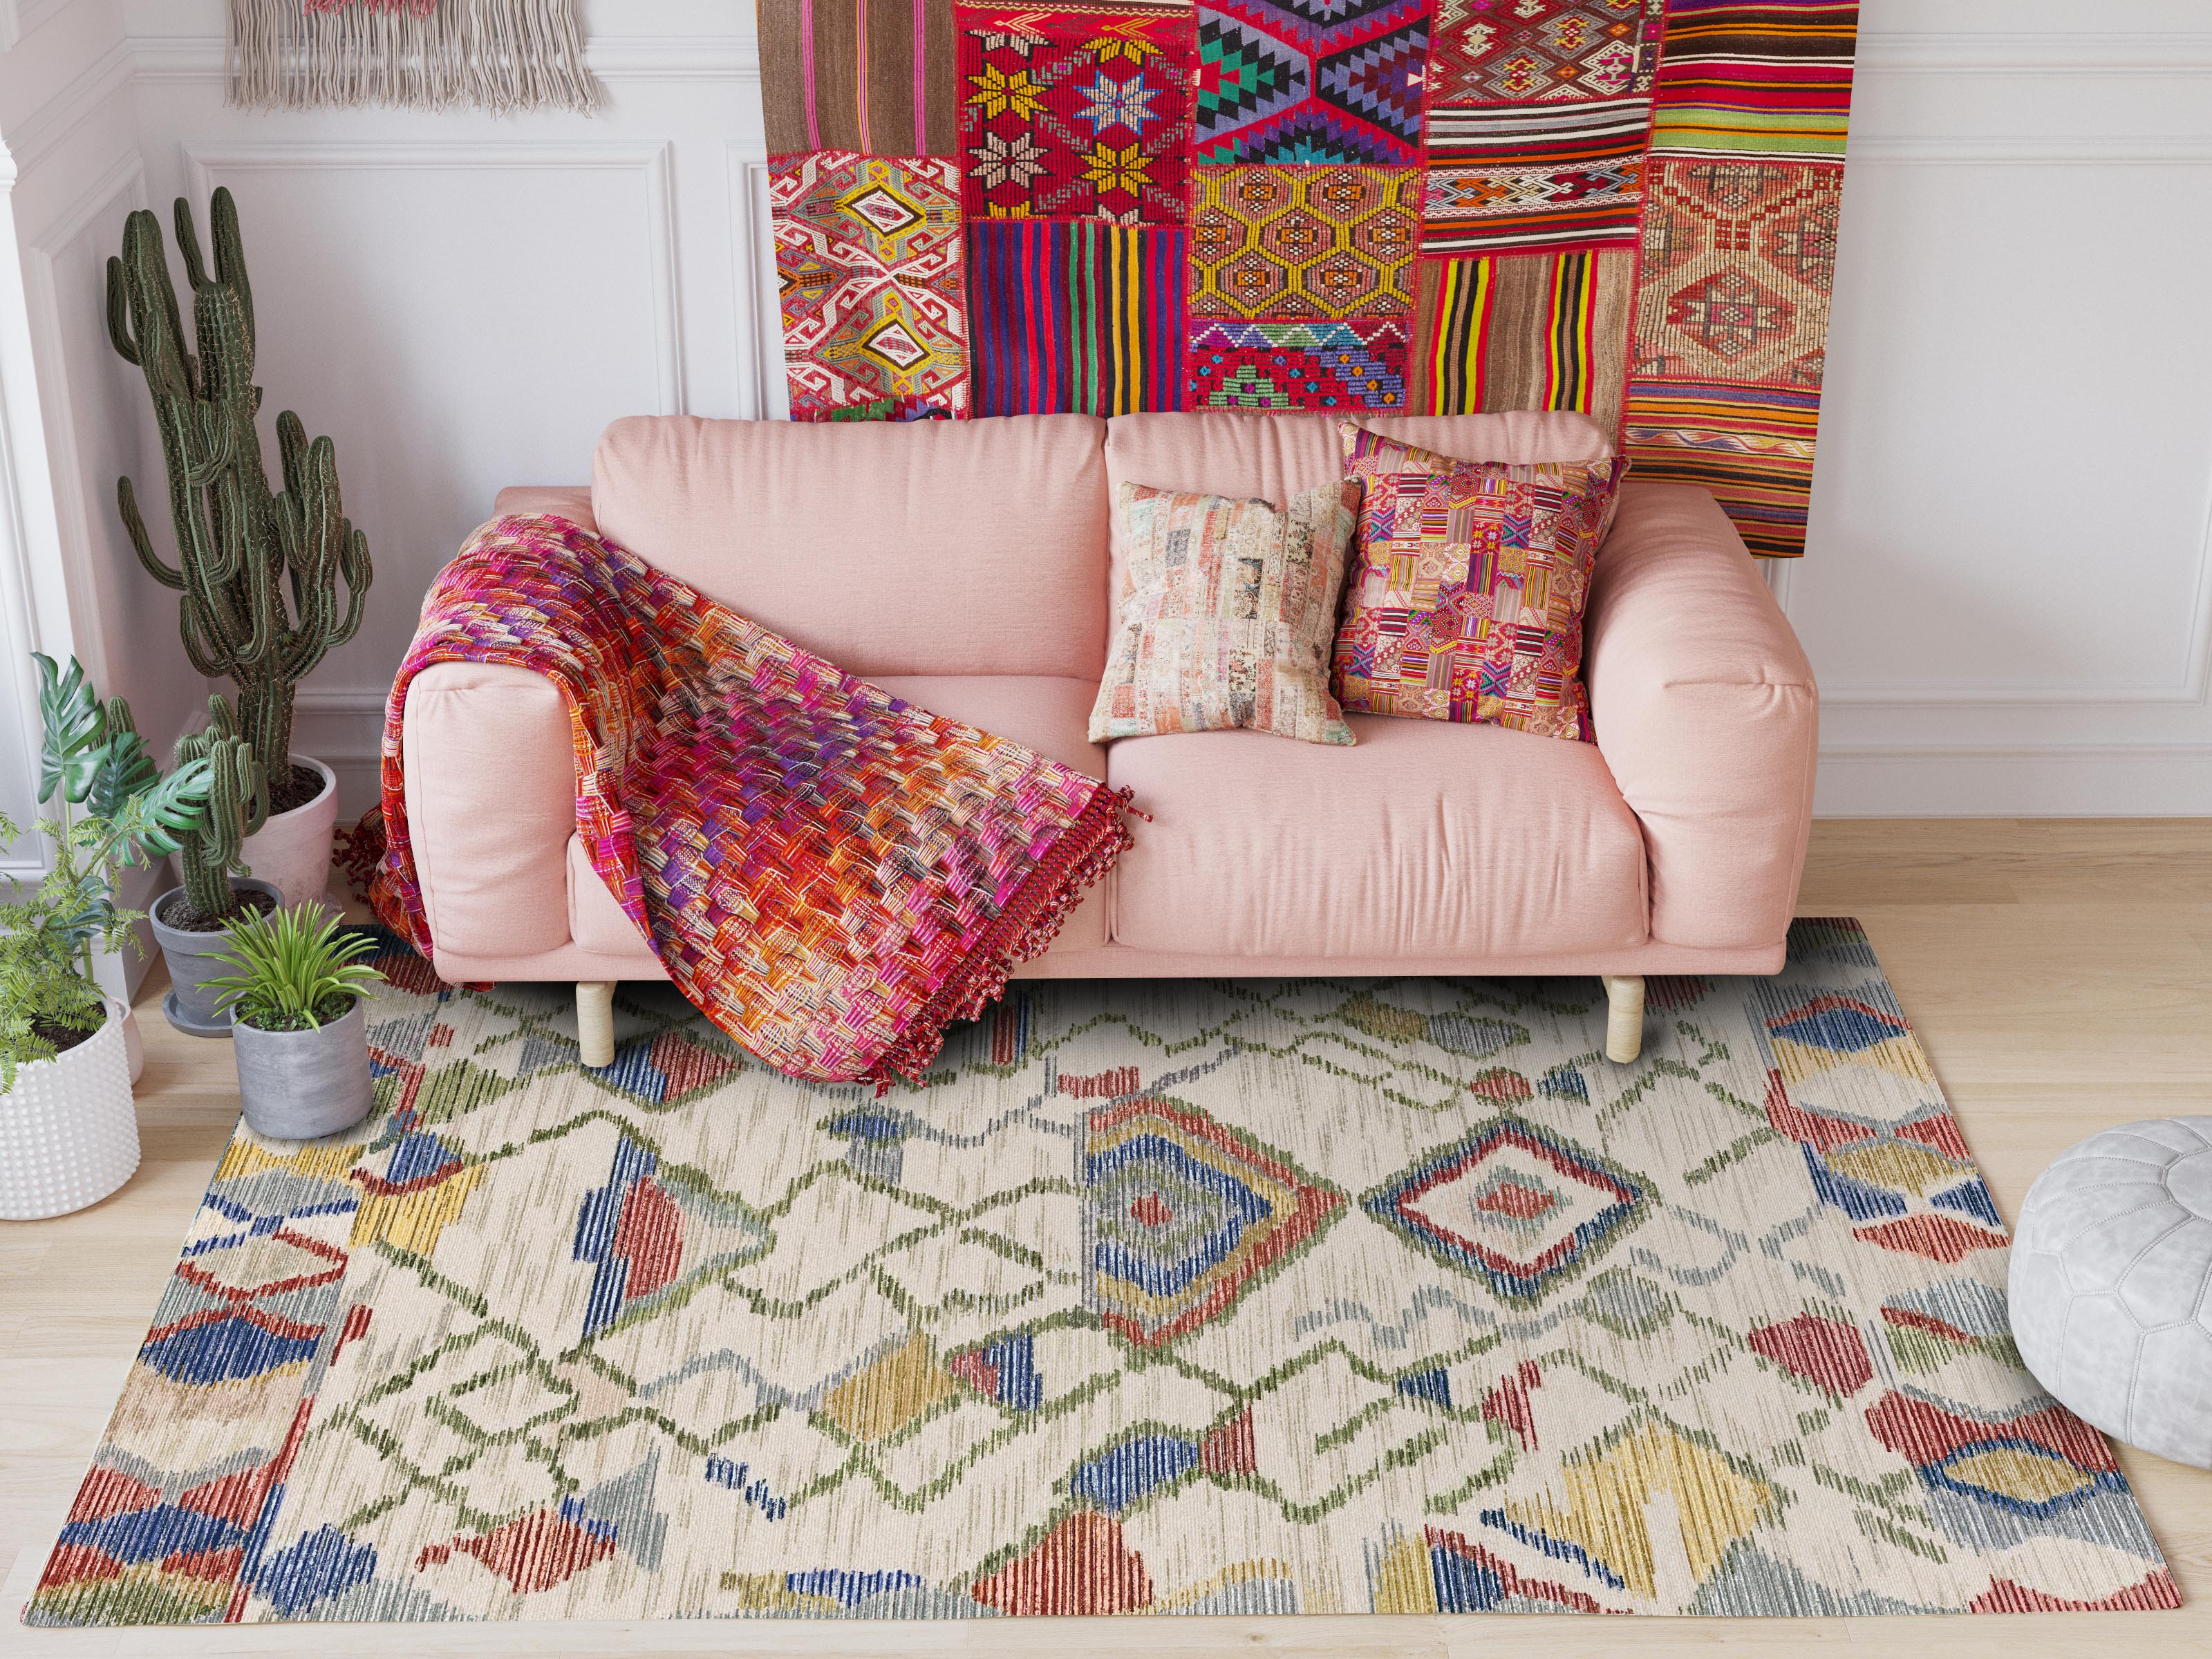 Morocco Style Carpets For Living Room Decor Polyester Carpet Floor Door Mat Home Area Rugs Delicate New Modern Bedroom Mats Rug|Carpet| |  - title=